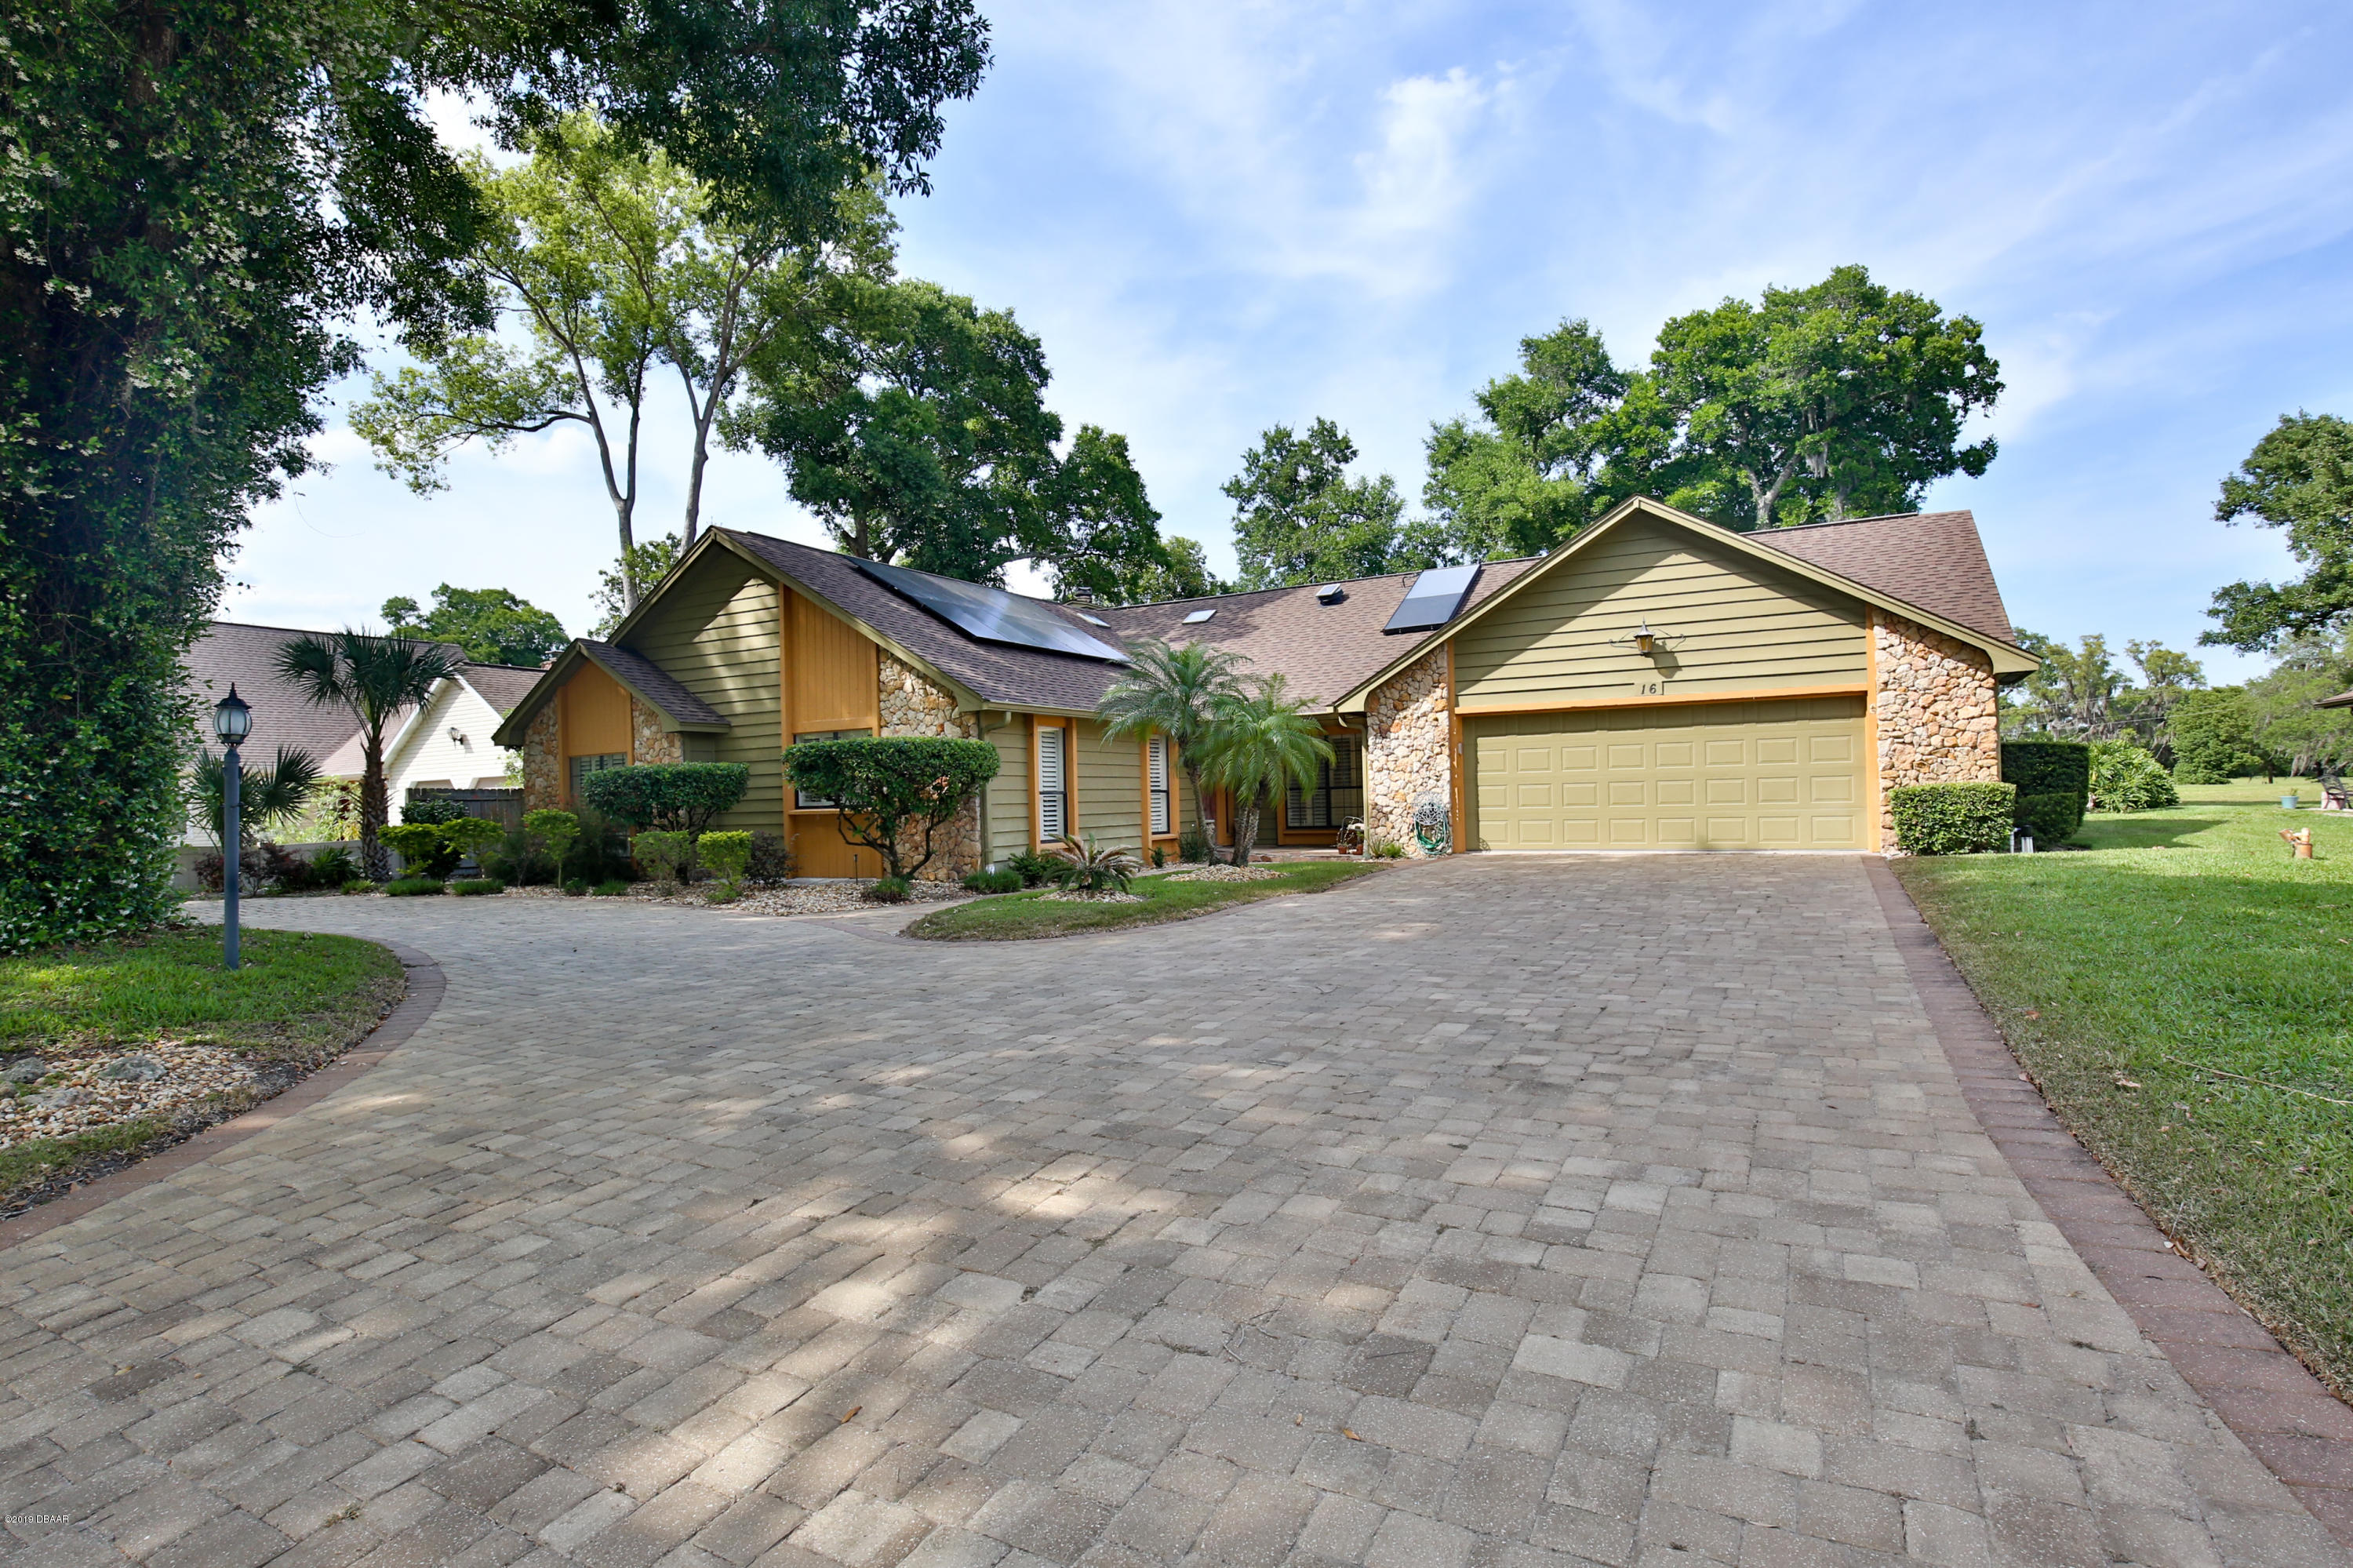 16 Eagle Court 32174 - One of Ormond Beach Homes for Sale